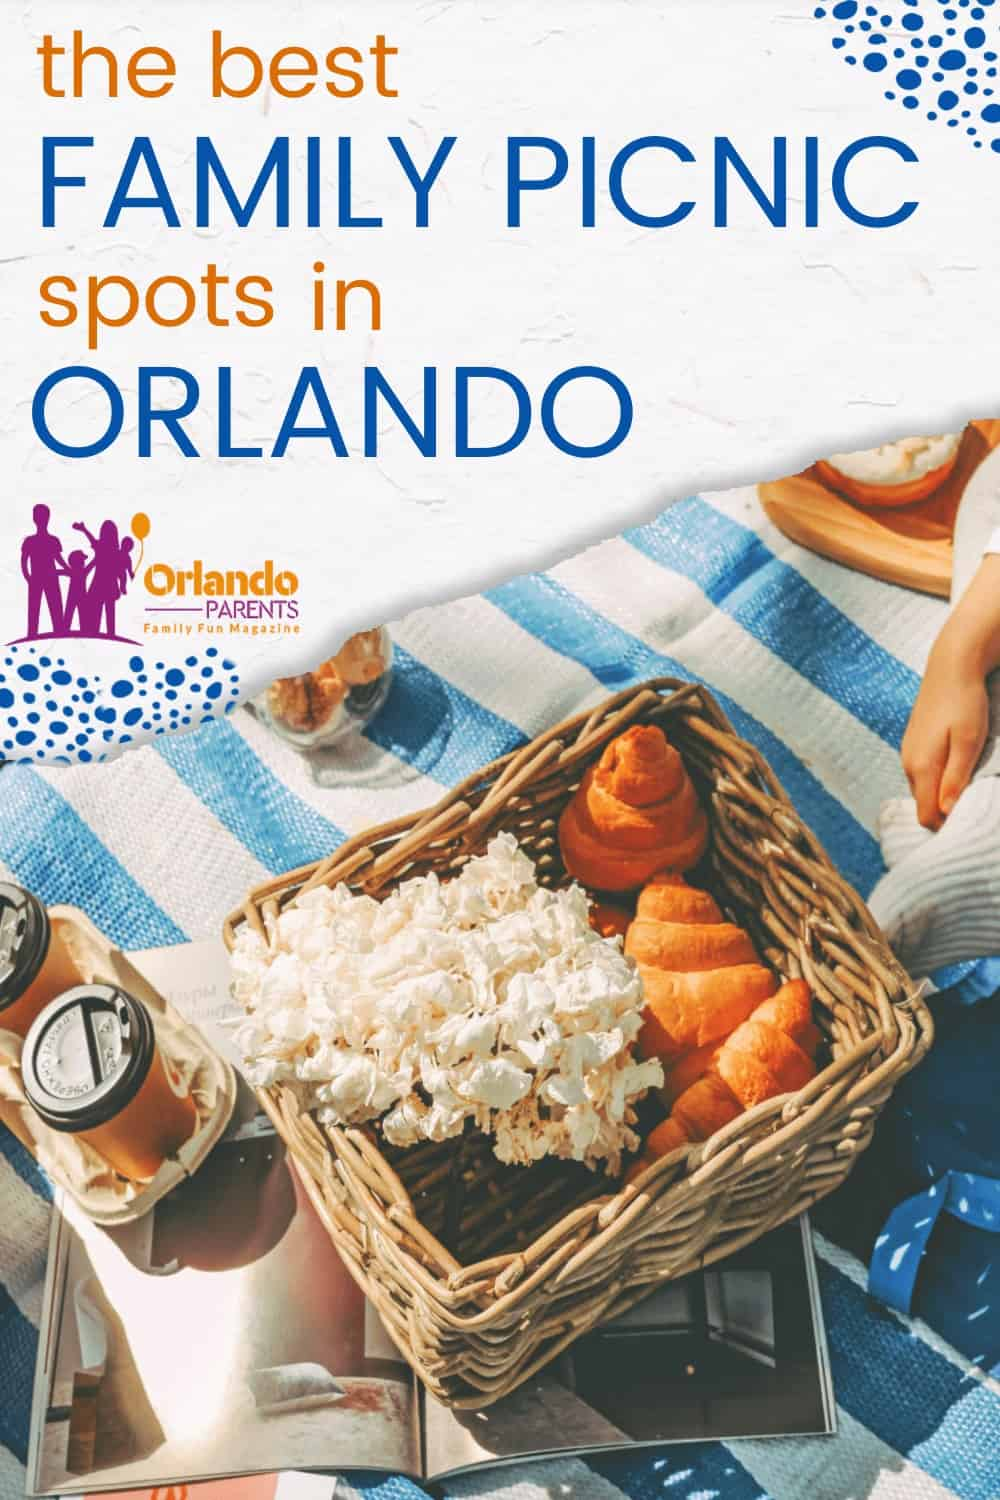 parks to have a picnic in orlando